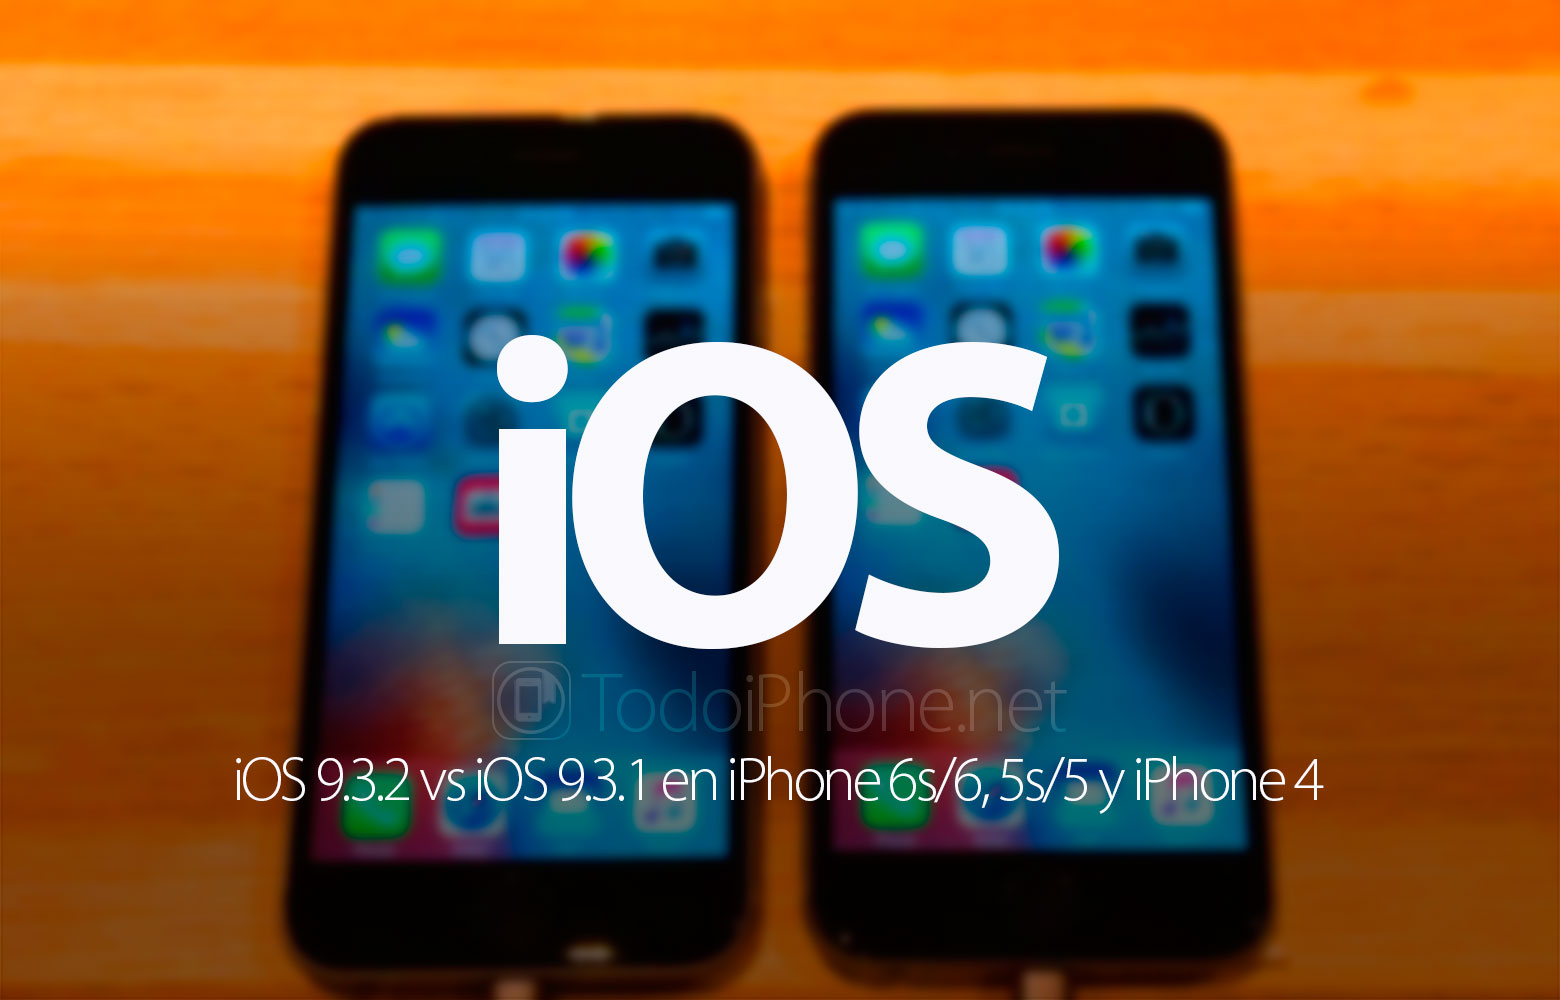 ios-9-3-2-vs-ios-9-3-1-iphone-4s-5-5s-6-6s